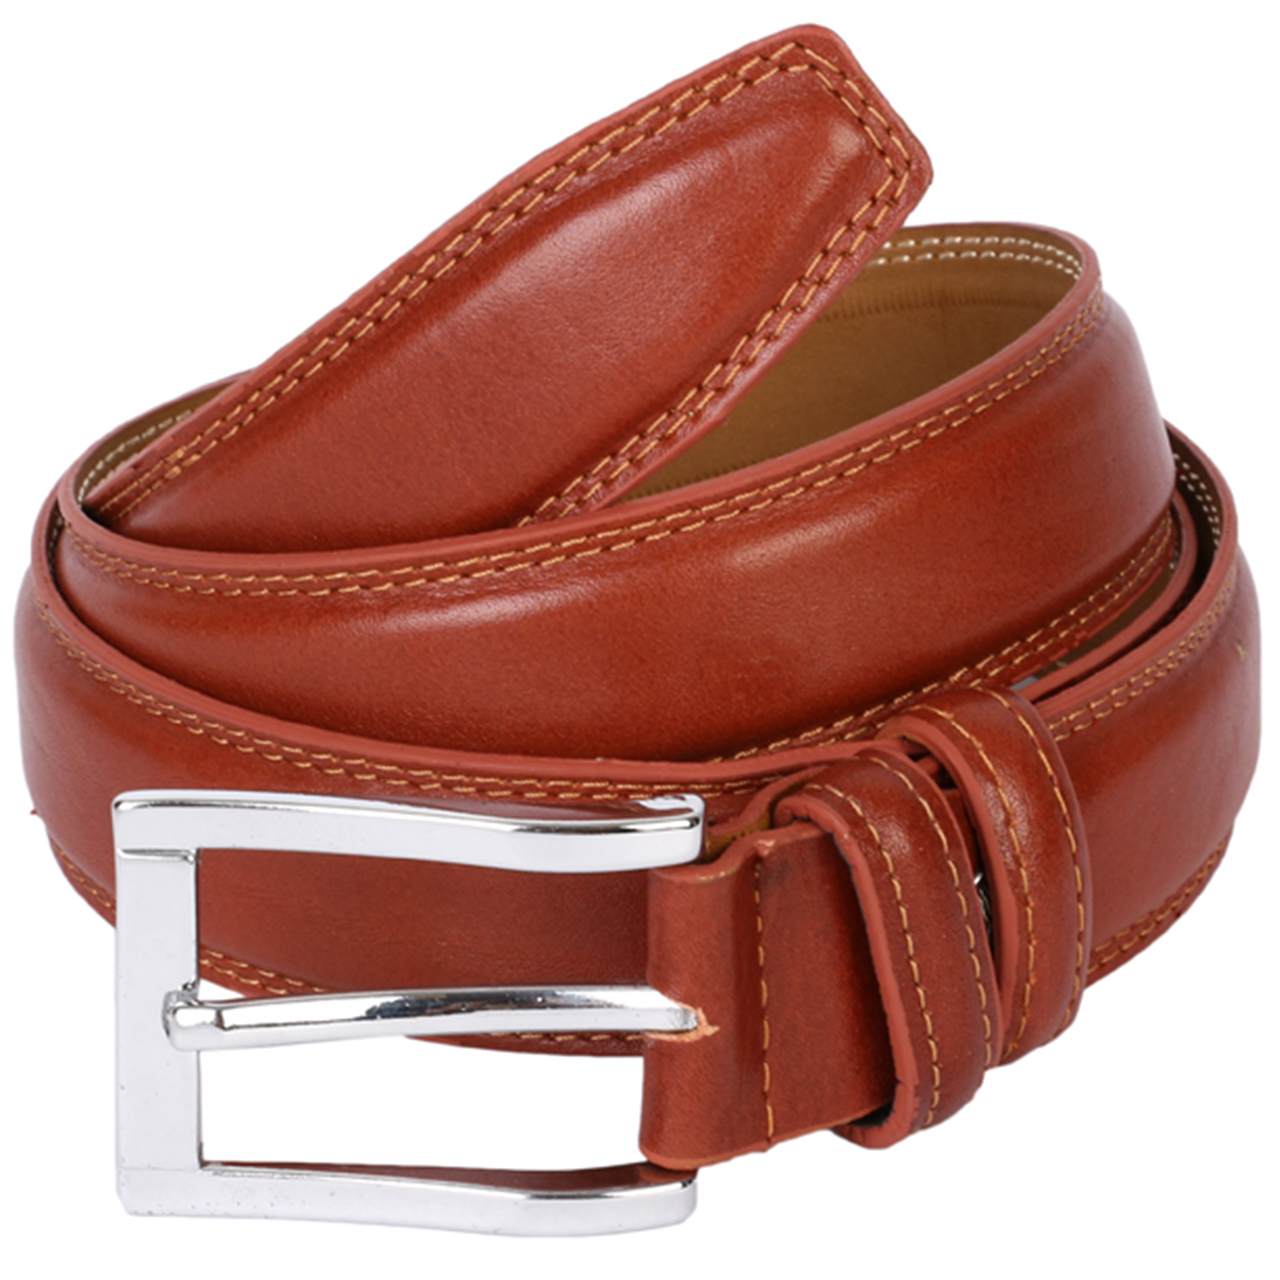 ROYALCHARM leather Men's belt, code M40-Brown